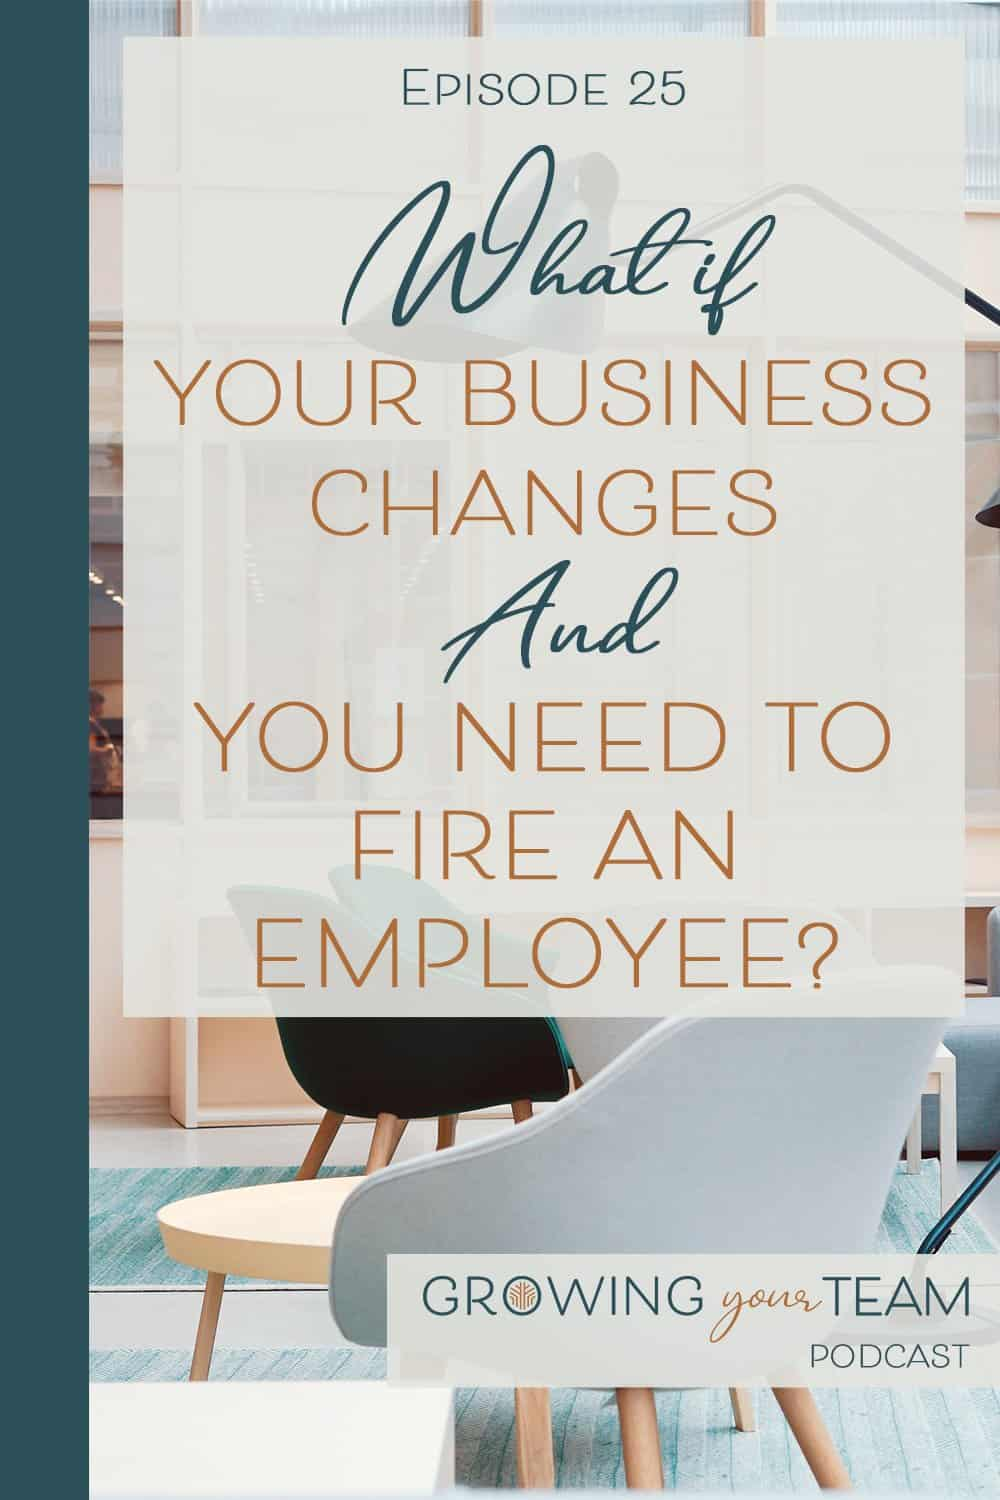 Fire an Employee, Growing You Team Podcast, Jamie Van Cuyk, Small Business